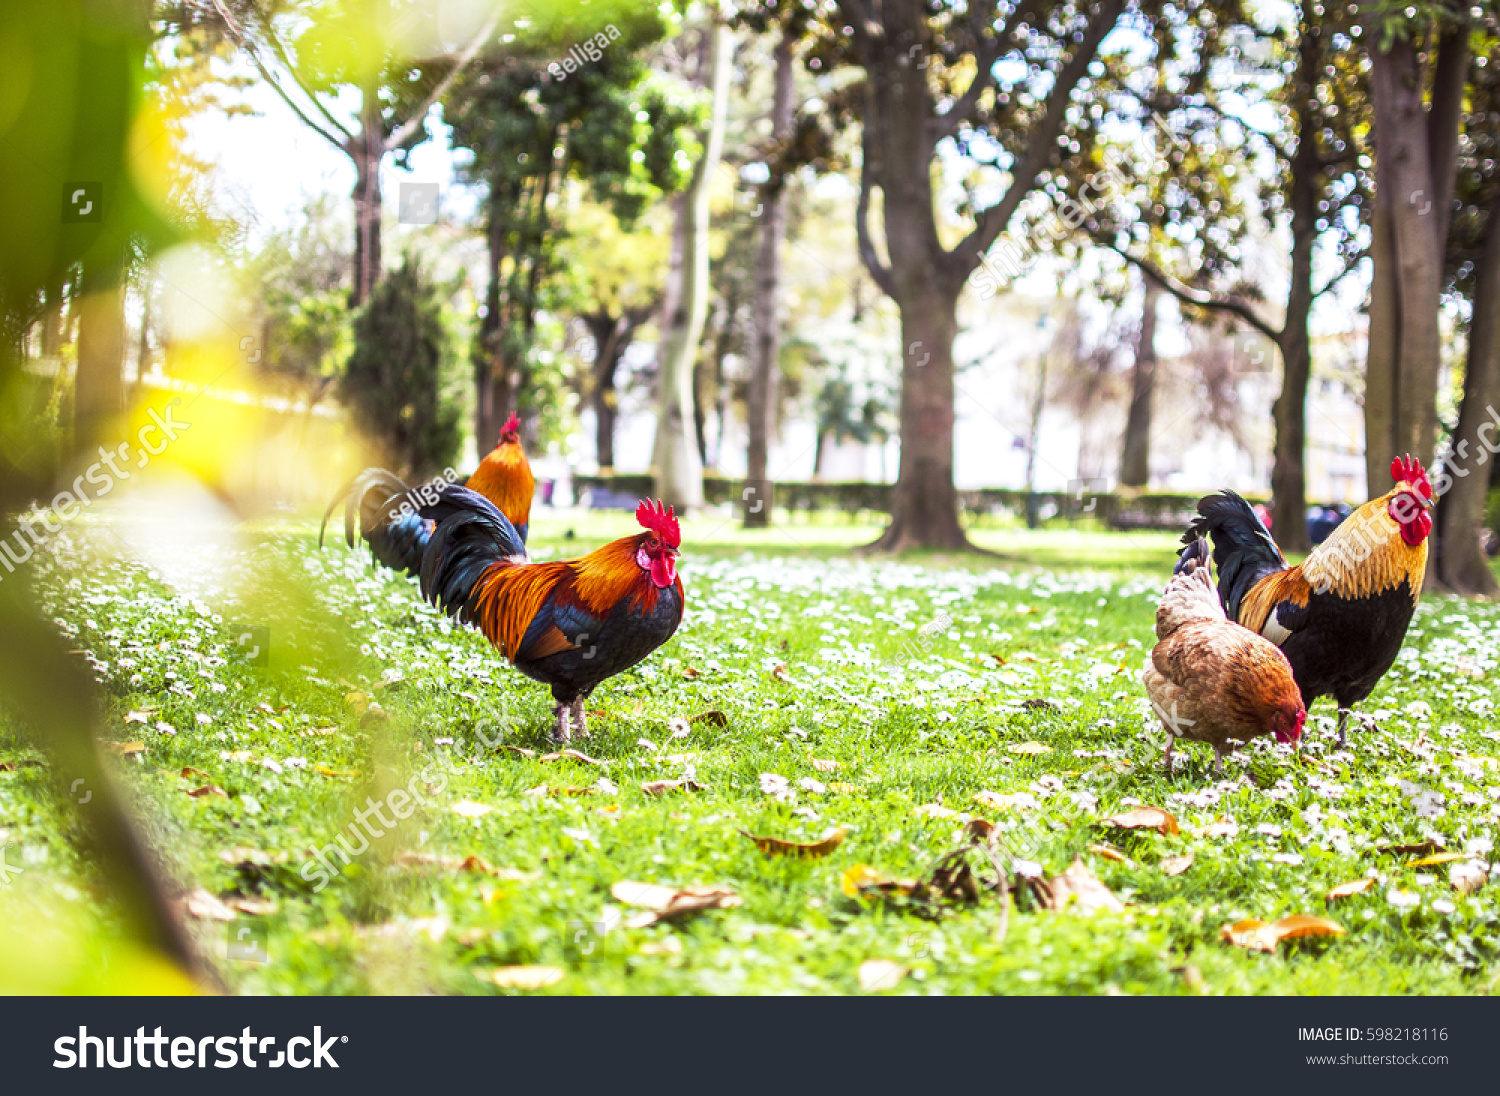 Roosters Chicken Park Lisbon Symbol Portugal Stock Photo Edit Now